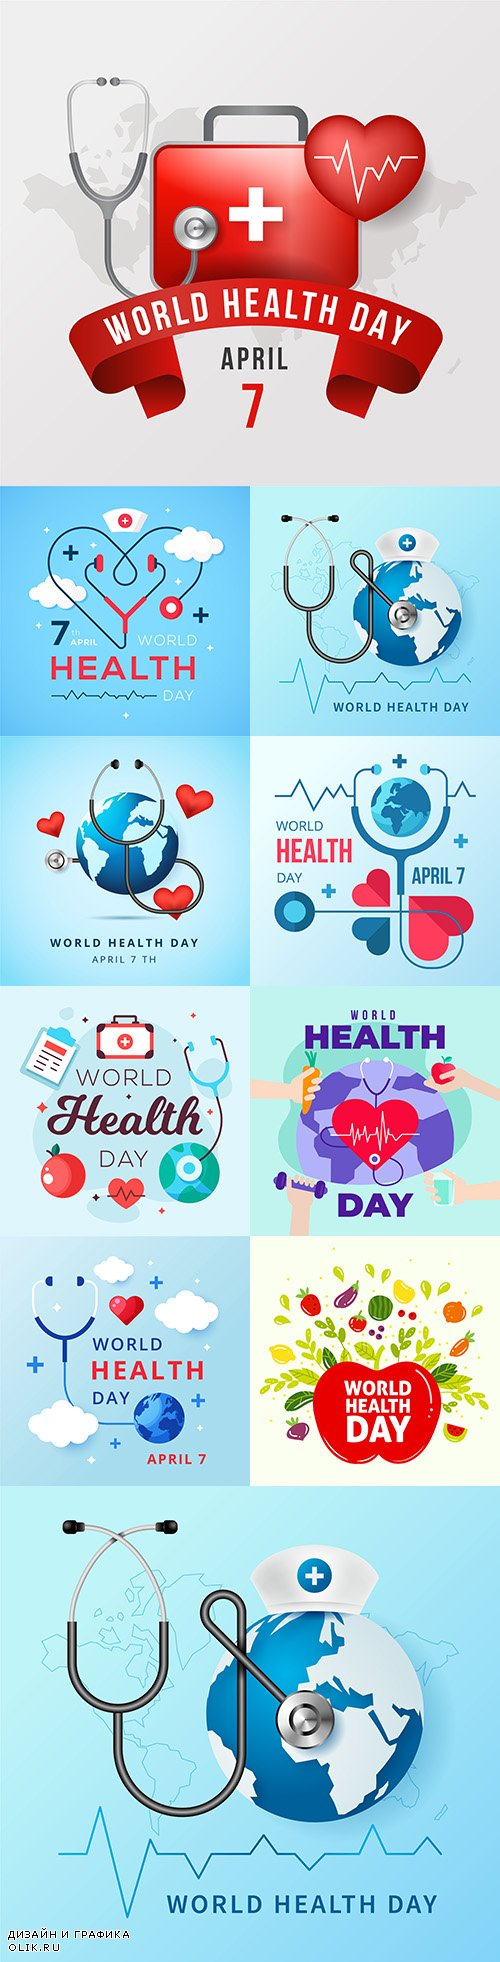 World Health Day flat design illustration 2